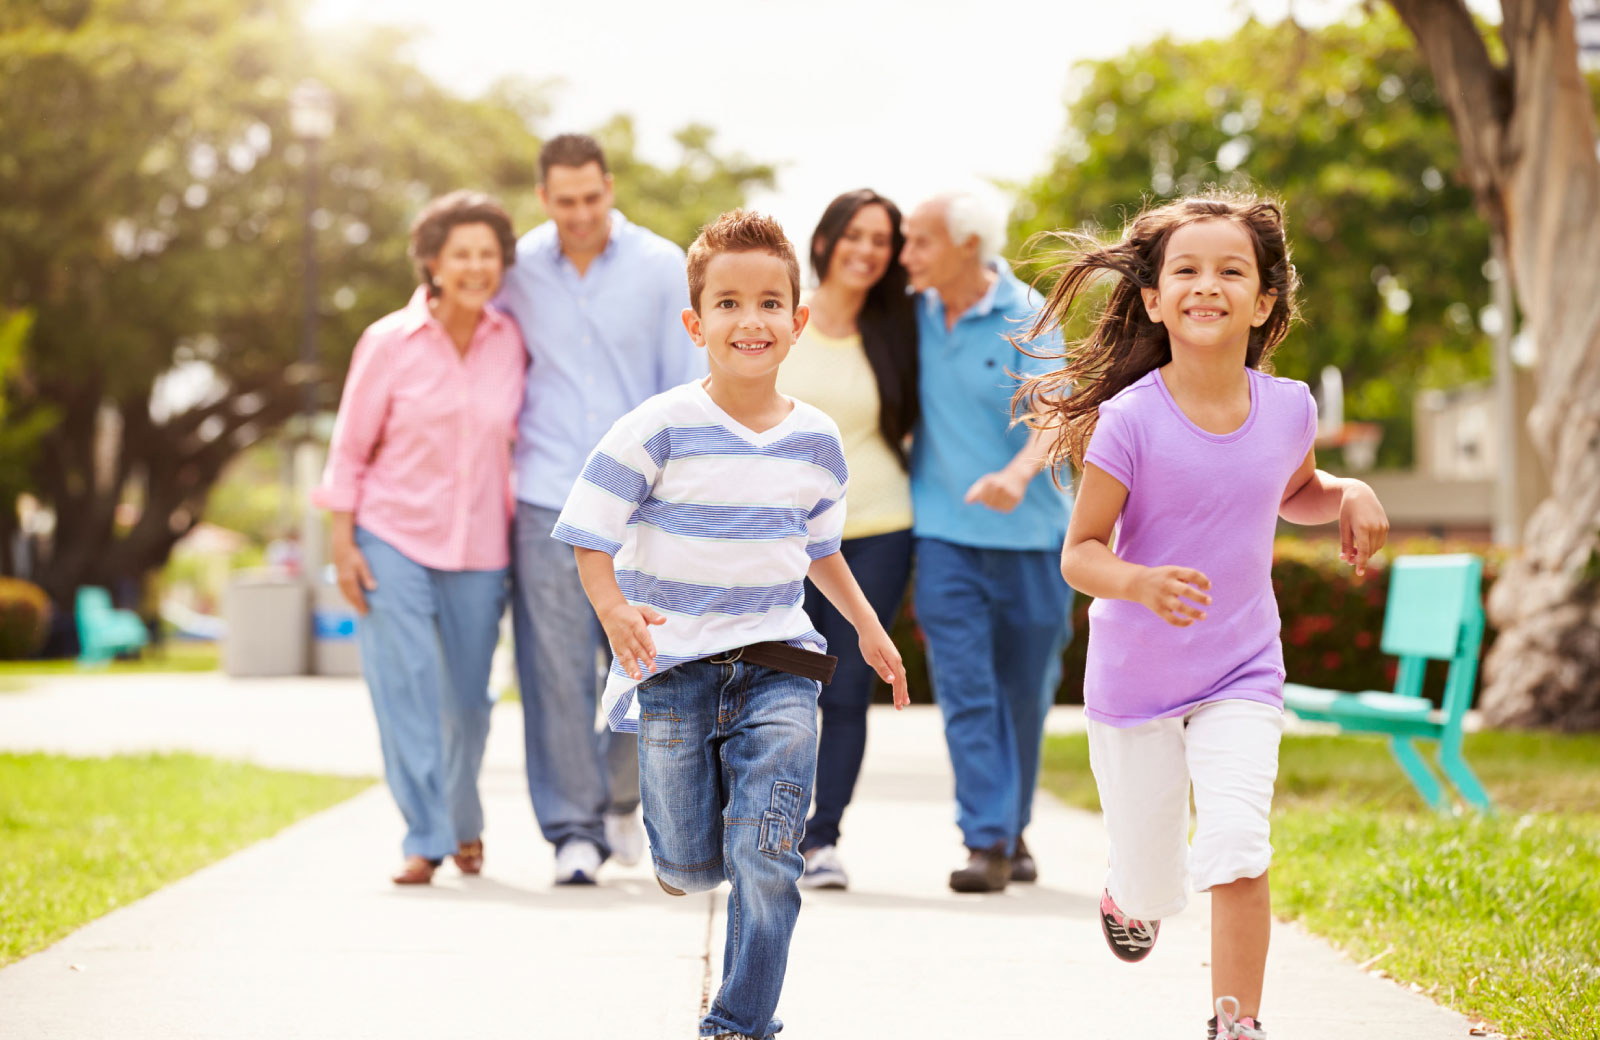 children running happily with family in background